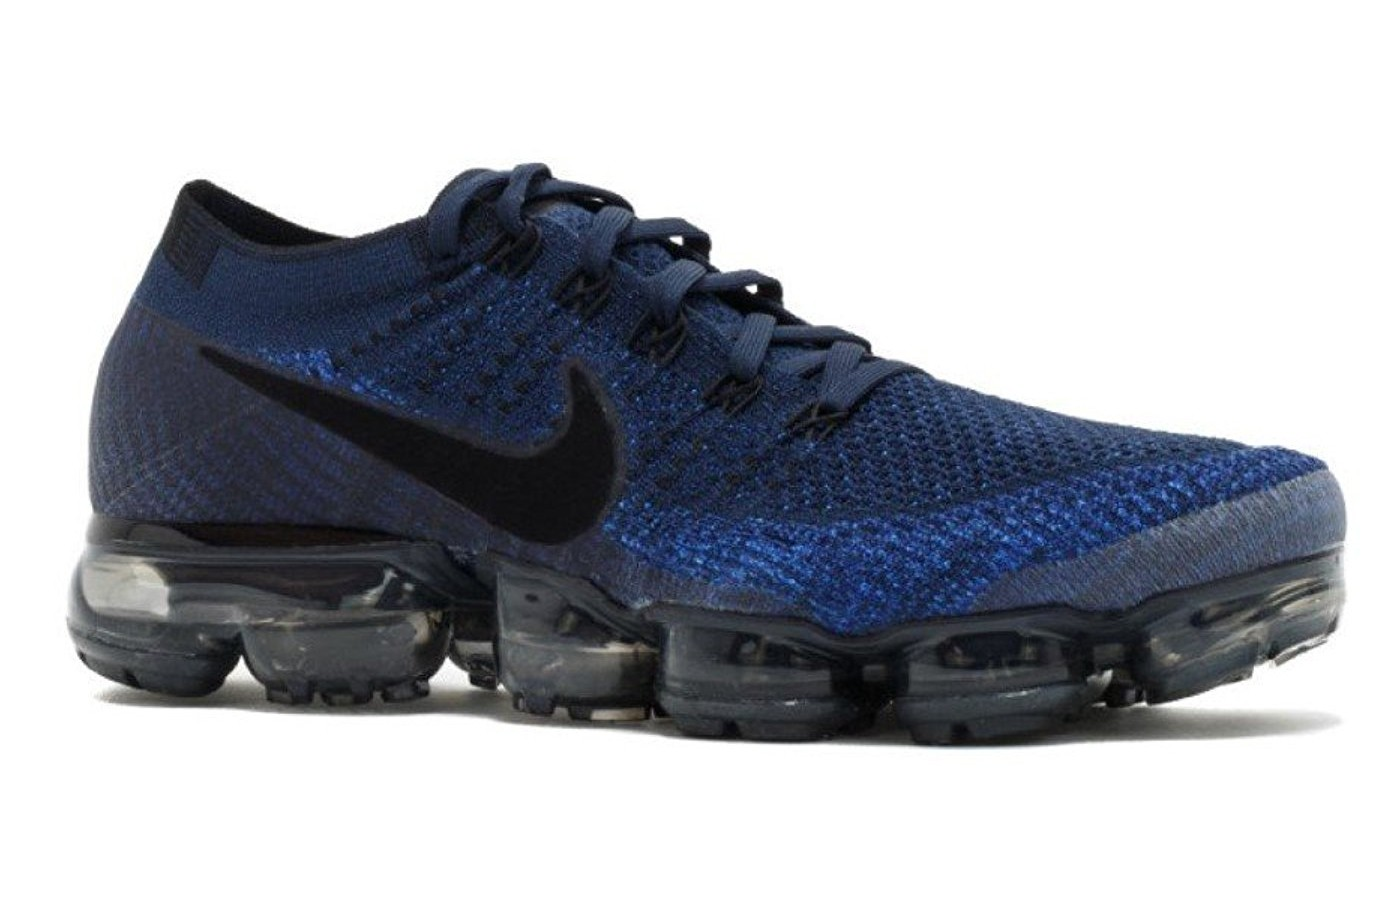 3e0cb92bf19a1 Nike Air Vapormax Flyknit Reviewed for Performance in 2019